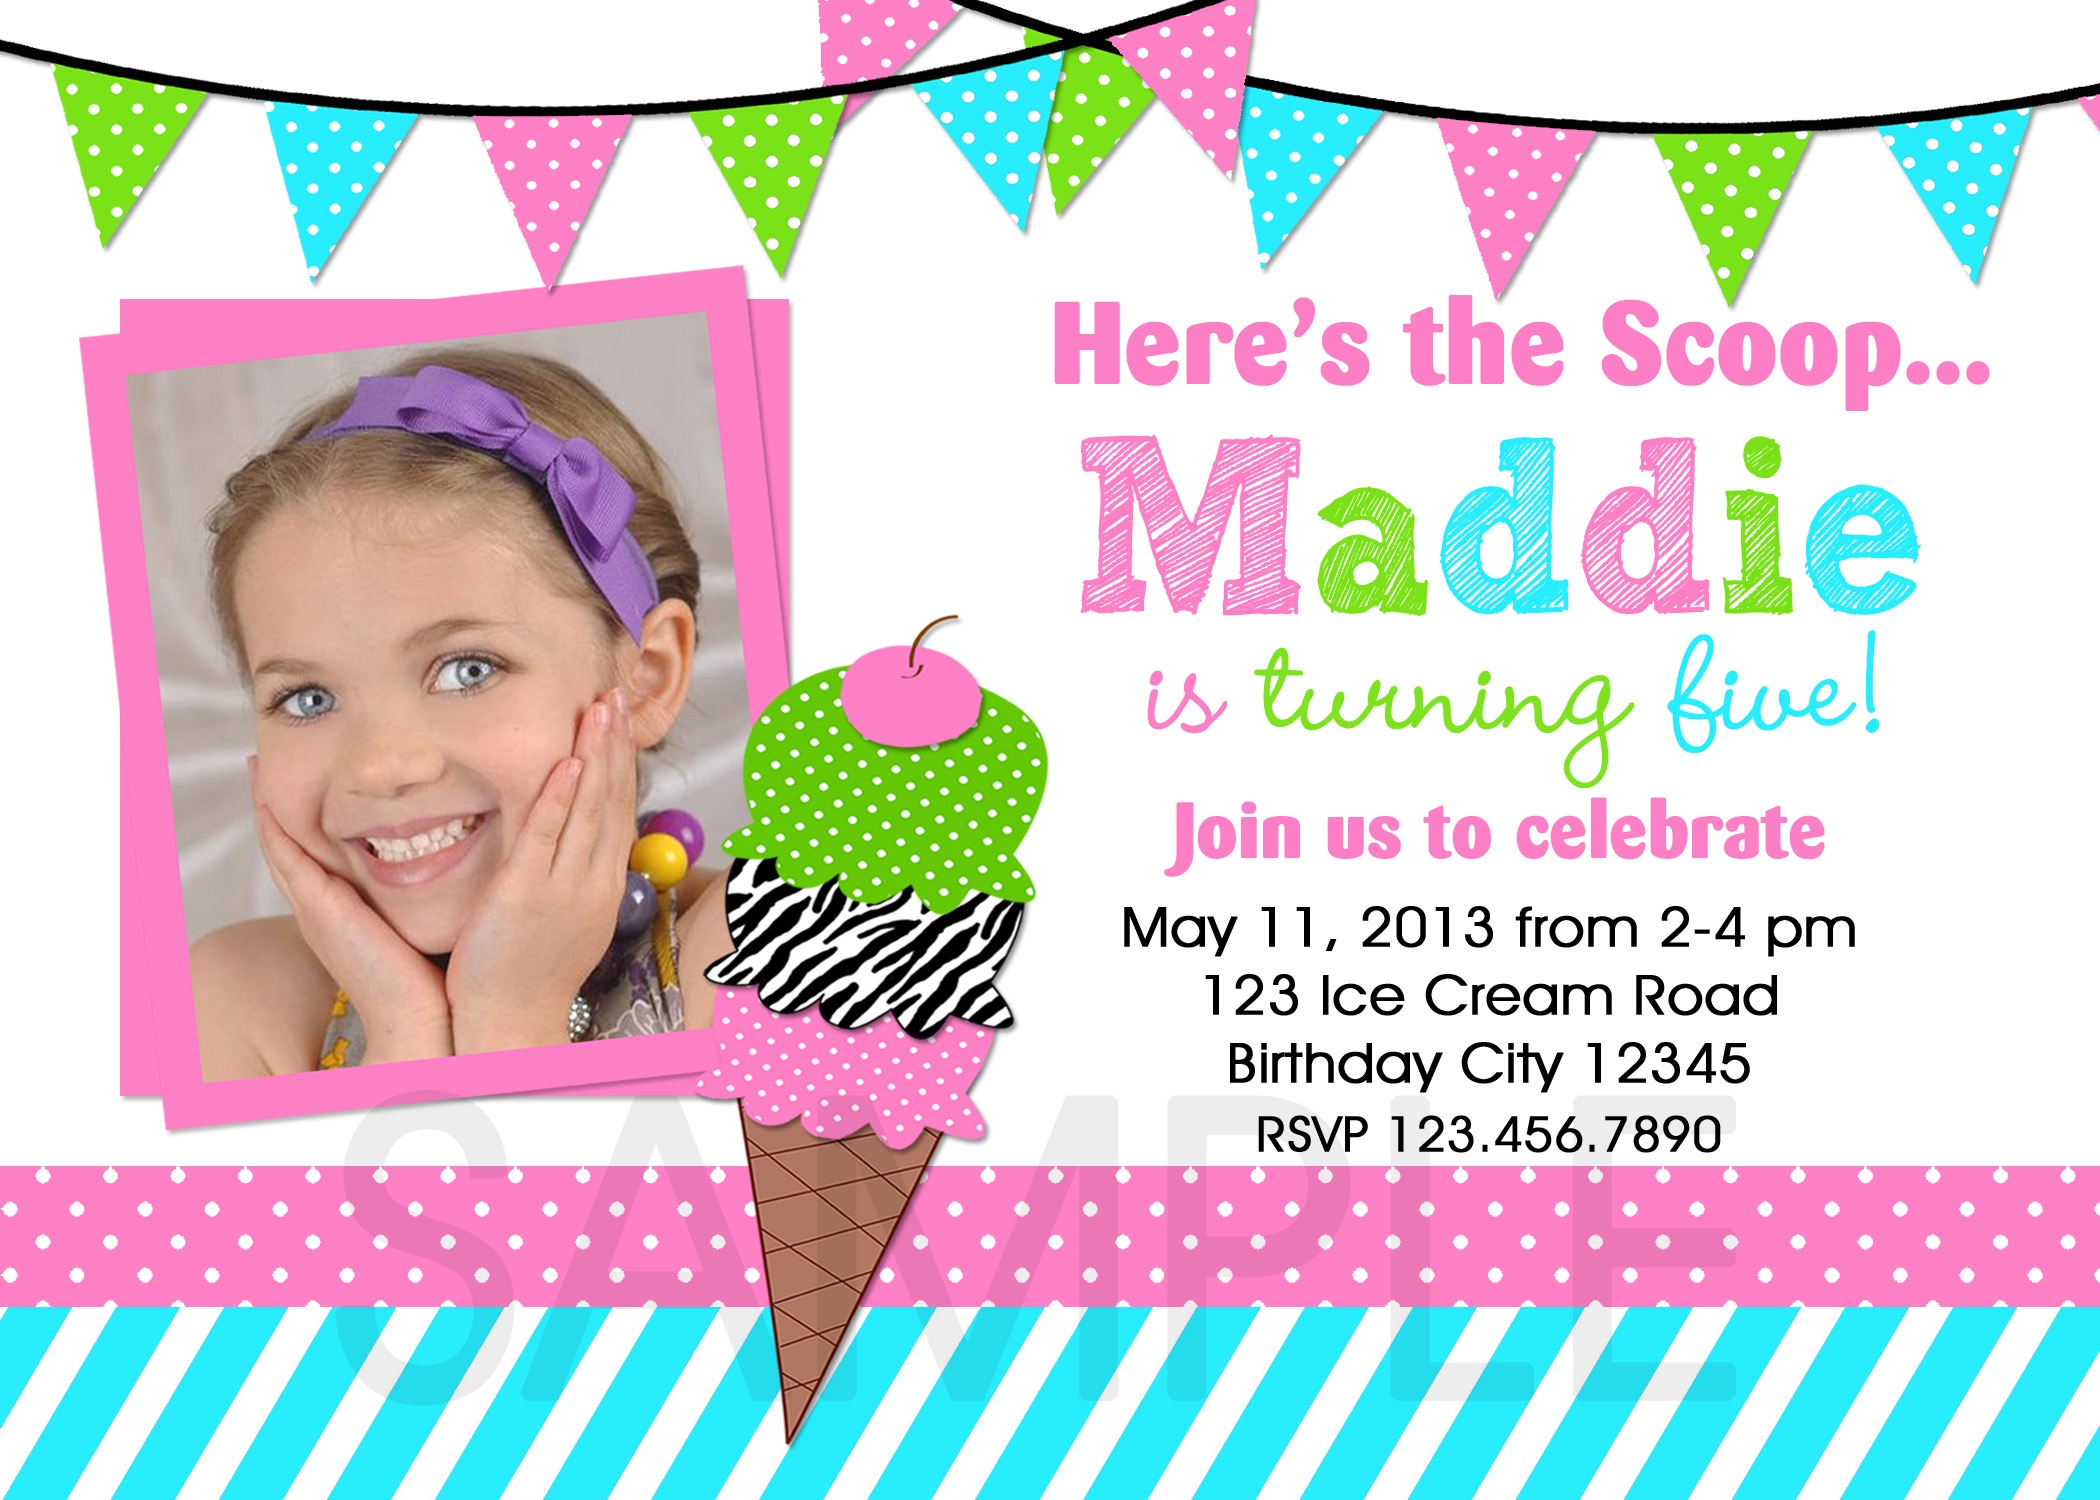 Ice Cream Birthday Party Invitations Summer Themed Invite Ice – Ice Cream Birthday Party Invitations